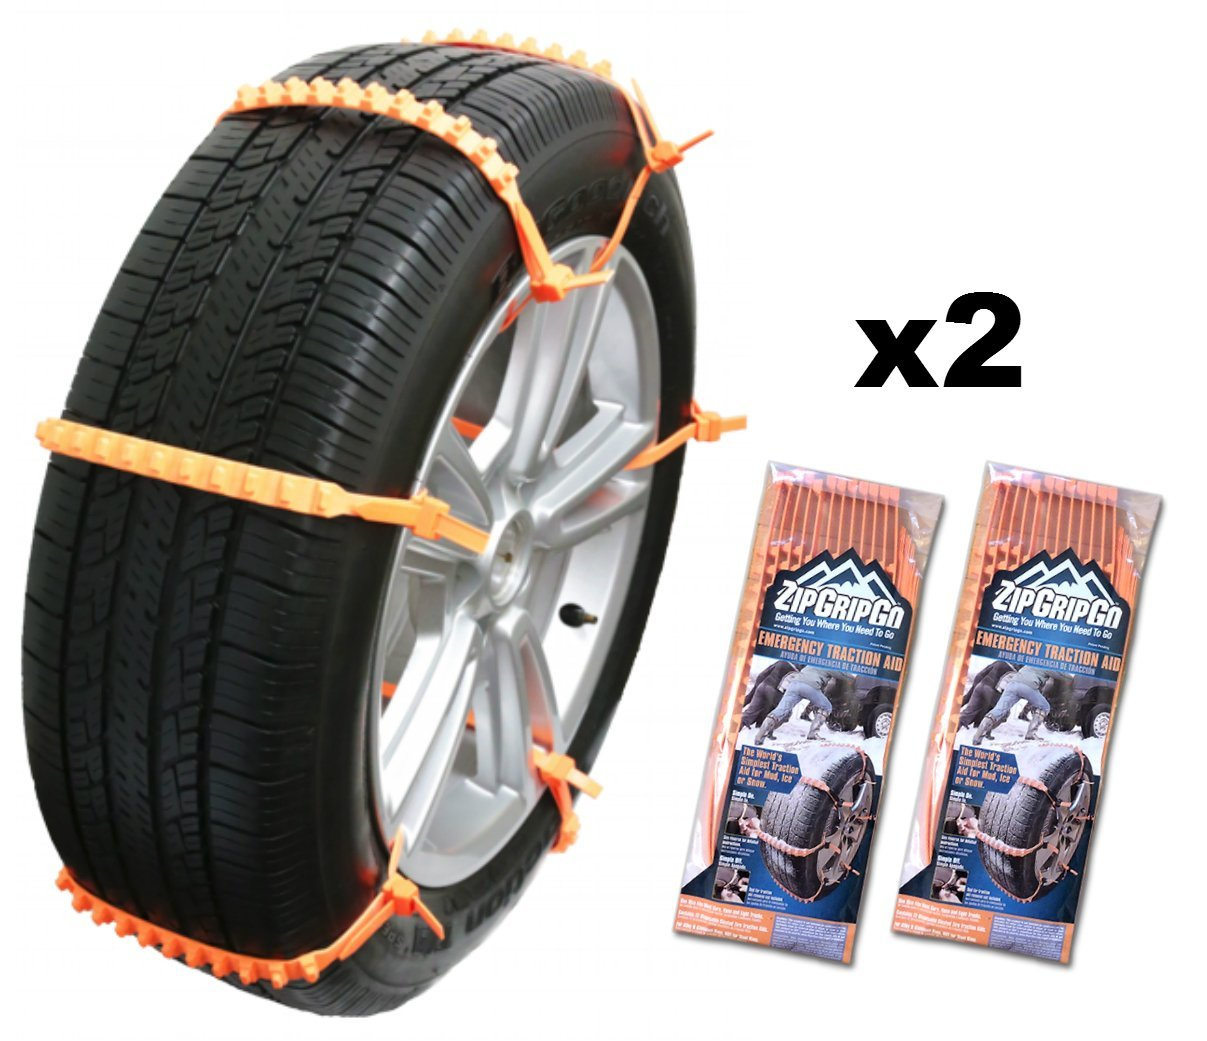 Zip Grip Go Cleated Tire Traction Snow Ice Mud Car SUV Van Truck by